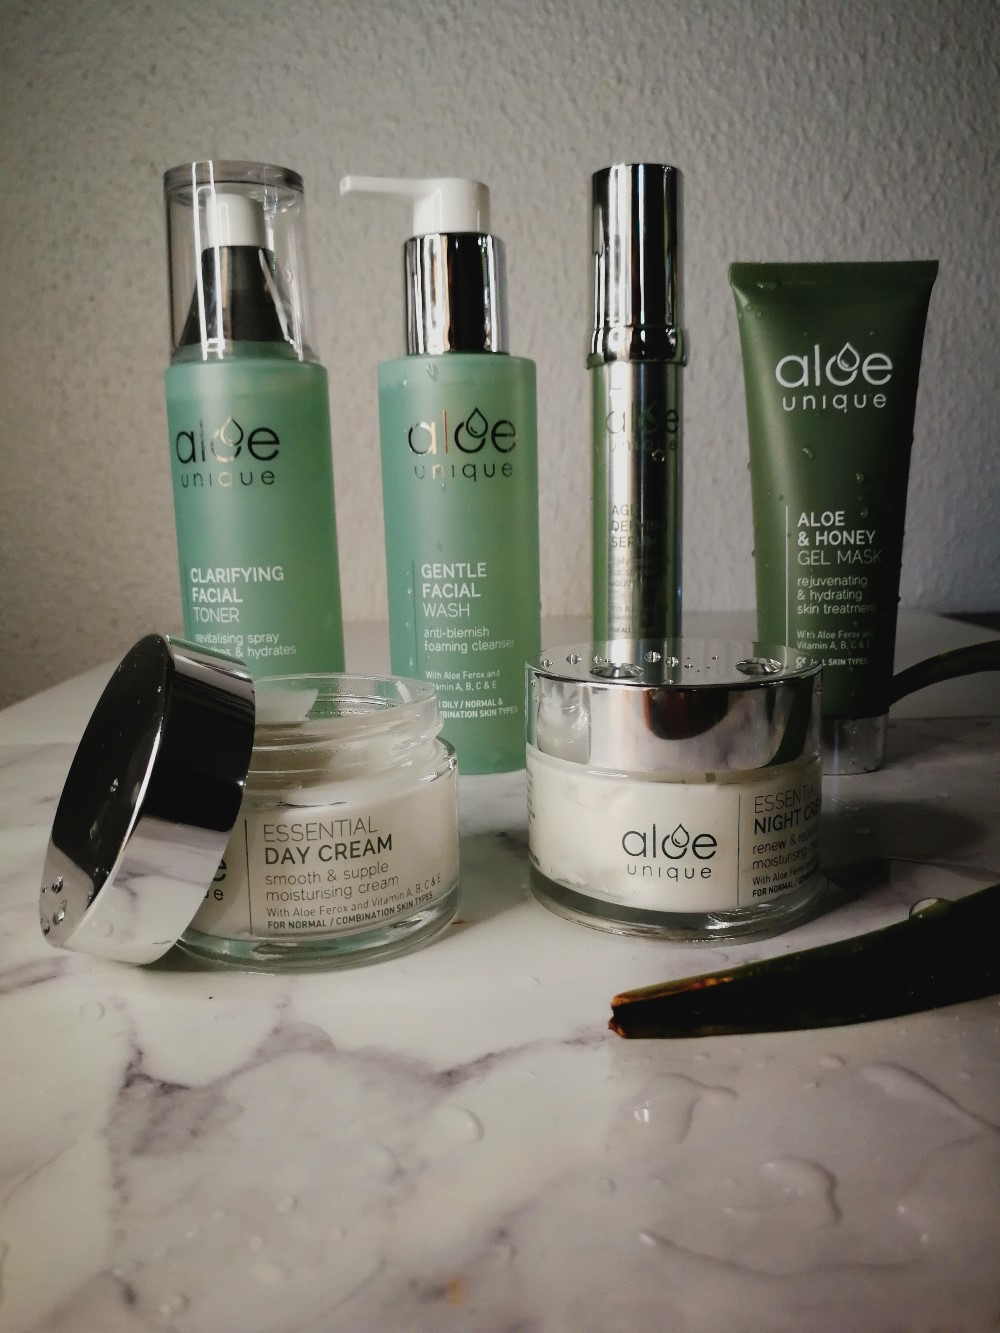 Aloe Unique Range in Review